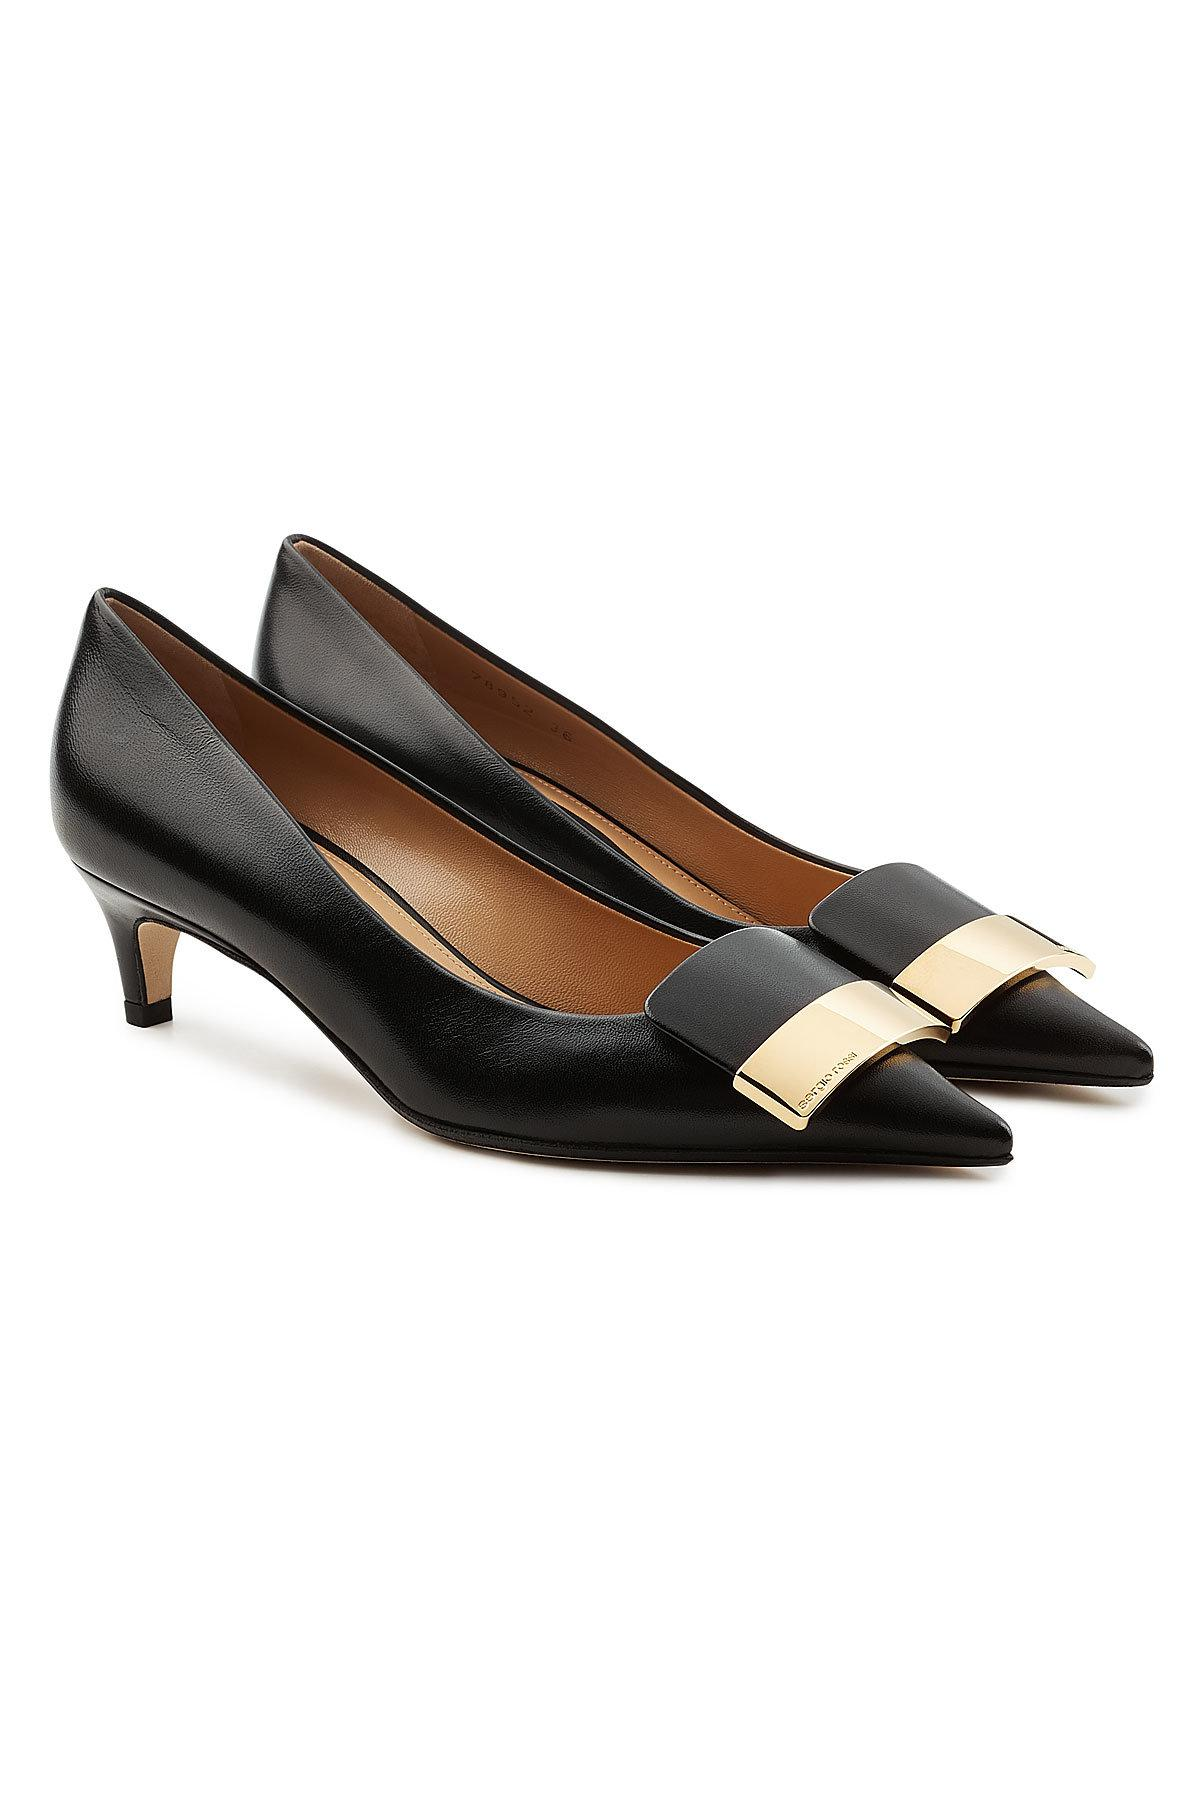 Sergio Rossi Leather Kitten Heel Pumps In Black